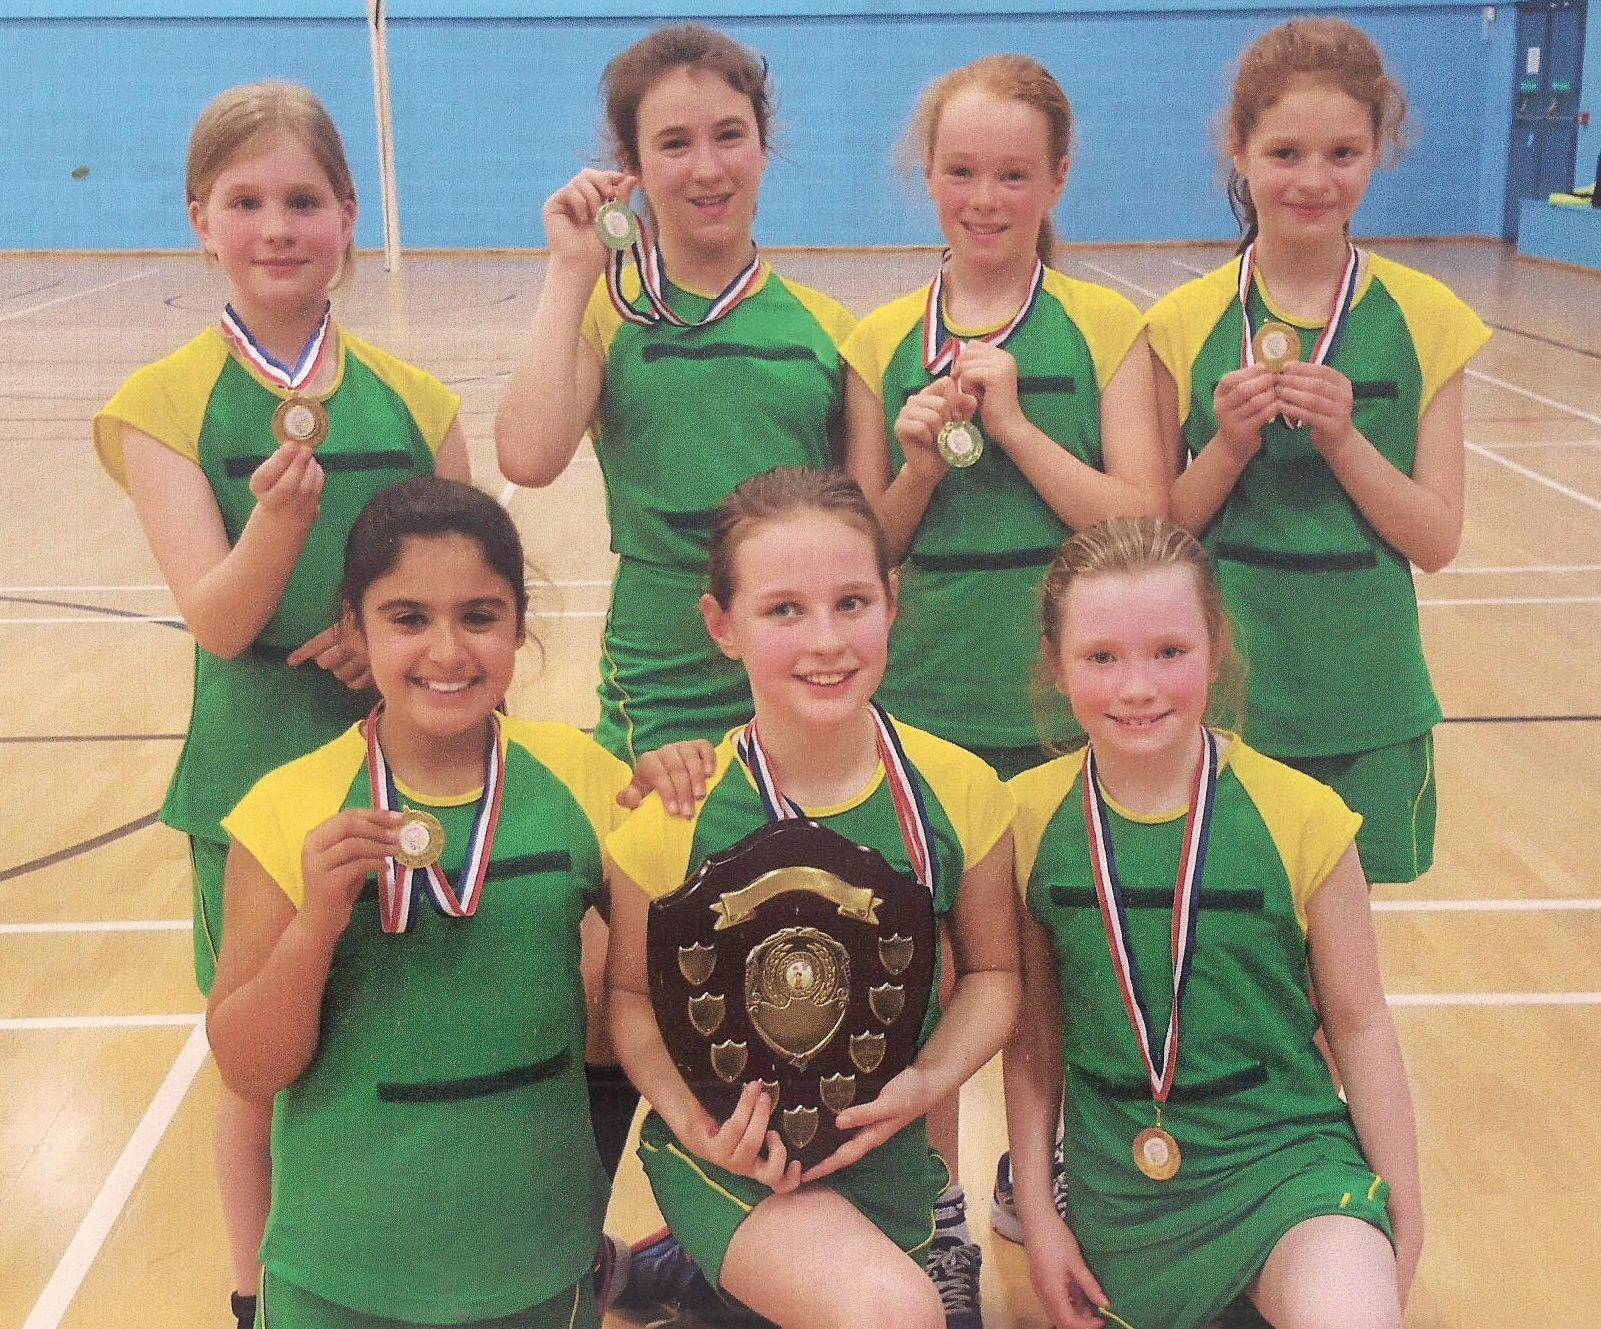 Our Lady of Grace's title-winning netball team, back from left, Anna Lepki, Eva Cabuderra, Holly Hamnett and Olivia Pickstock, front, Llani Butt, Niamh Corcoran and Daisy Hunt